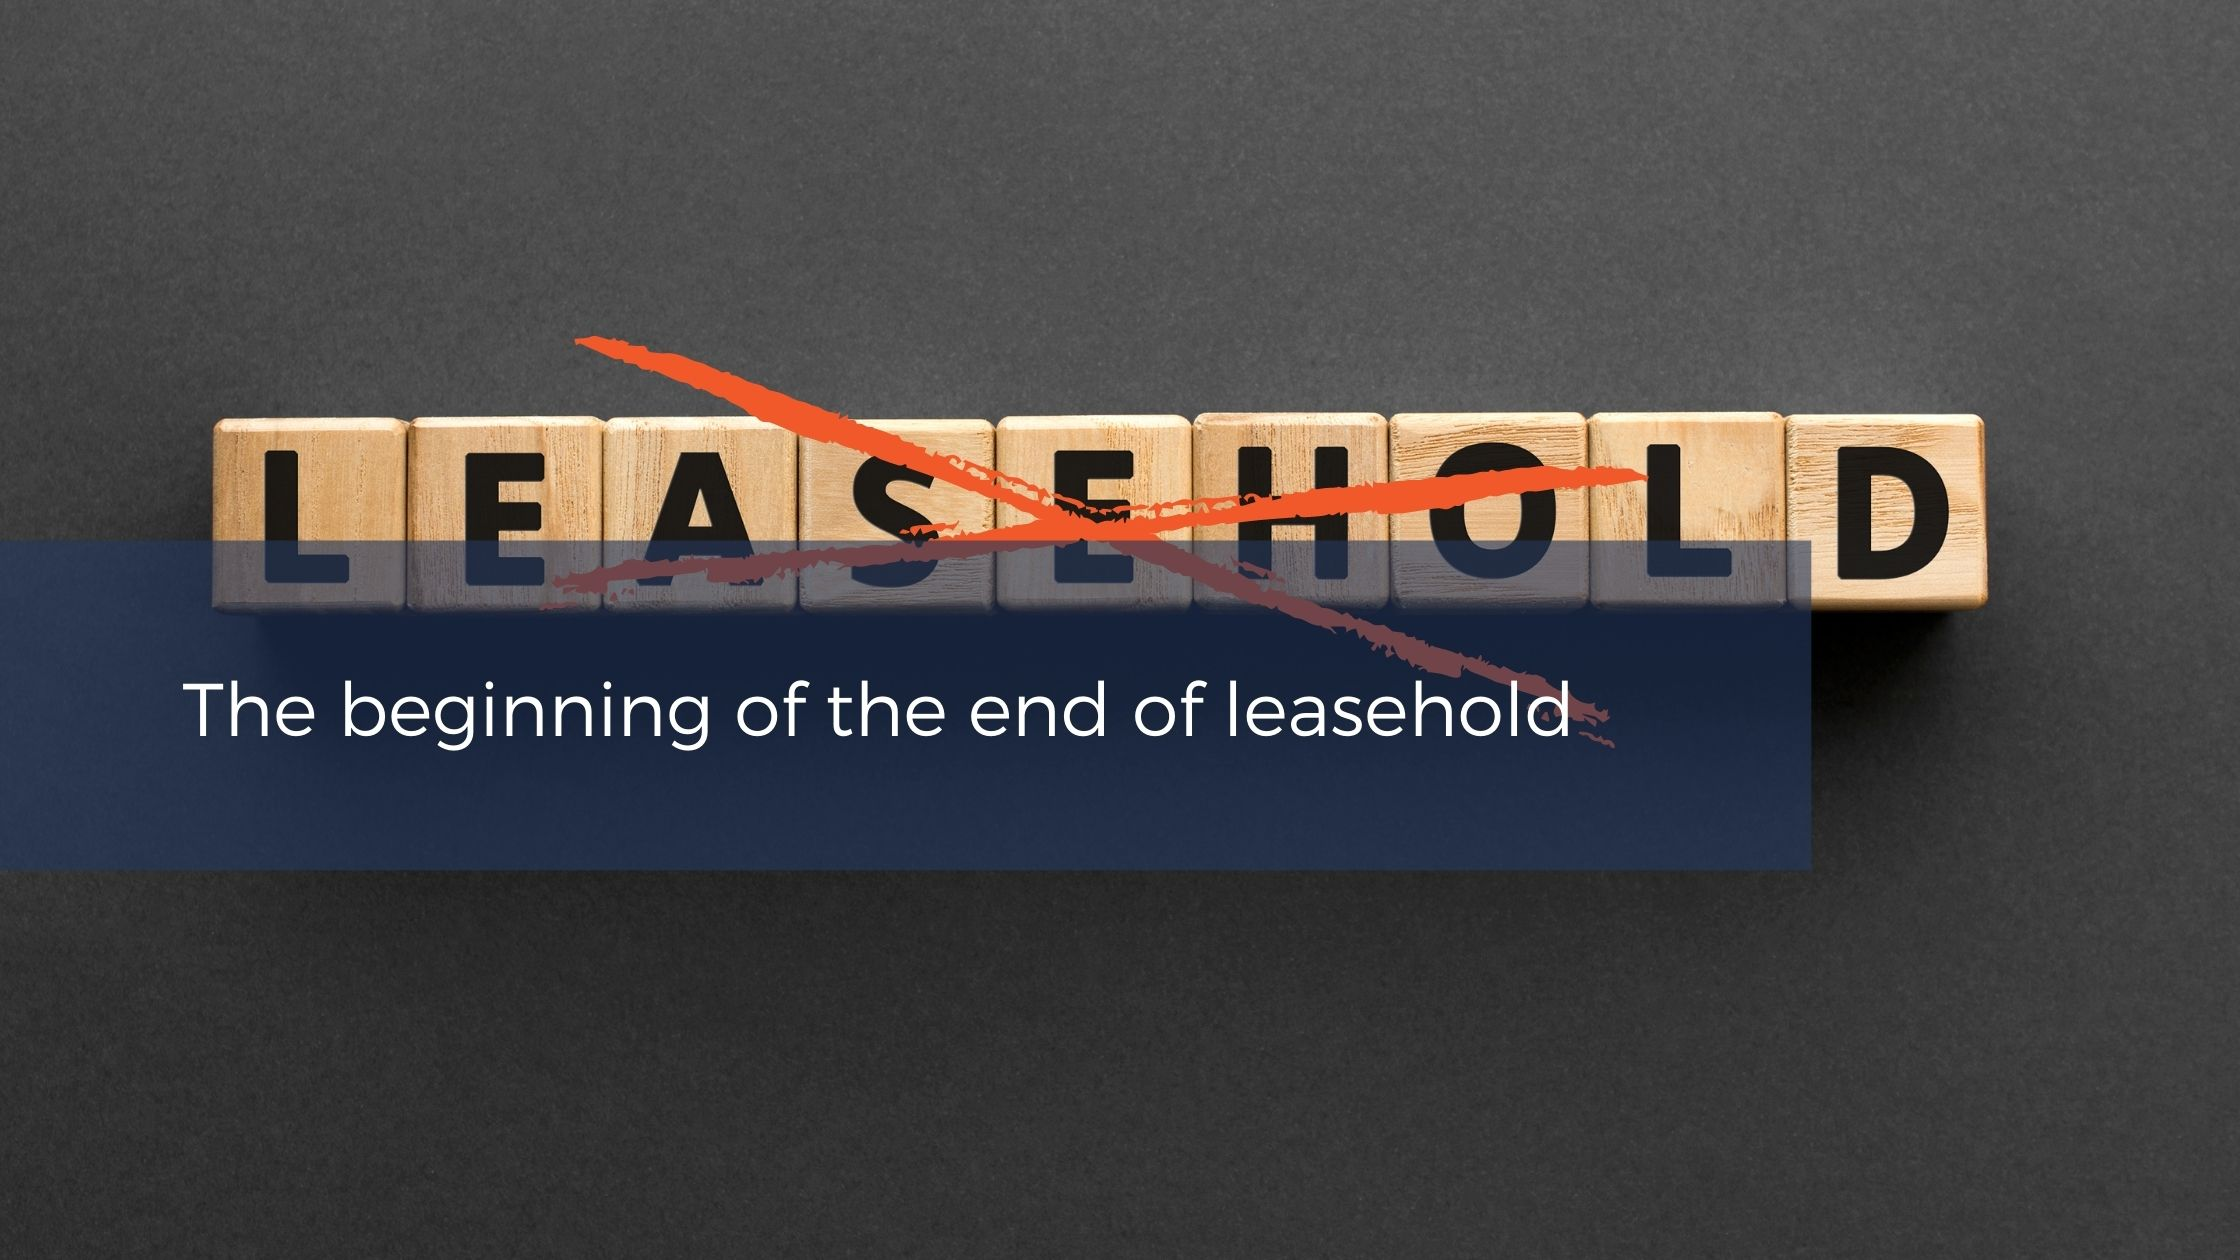 The beginning of the end of leasehold